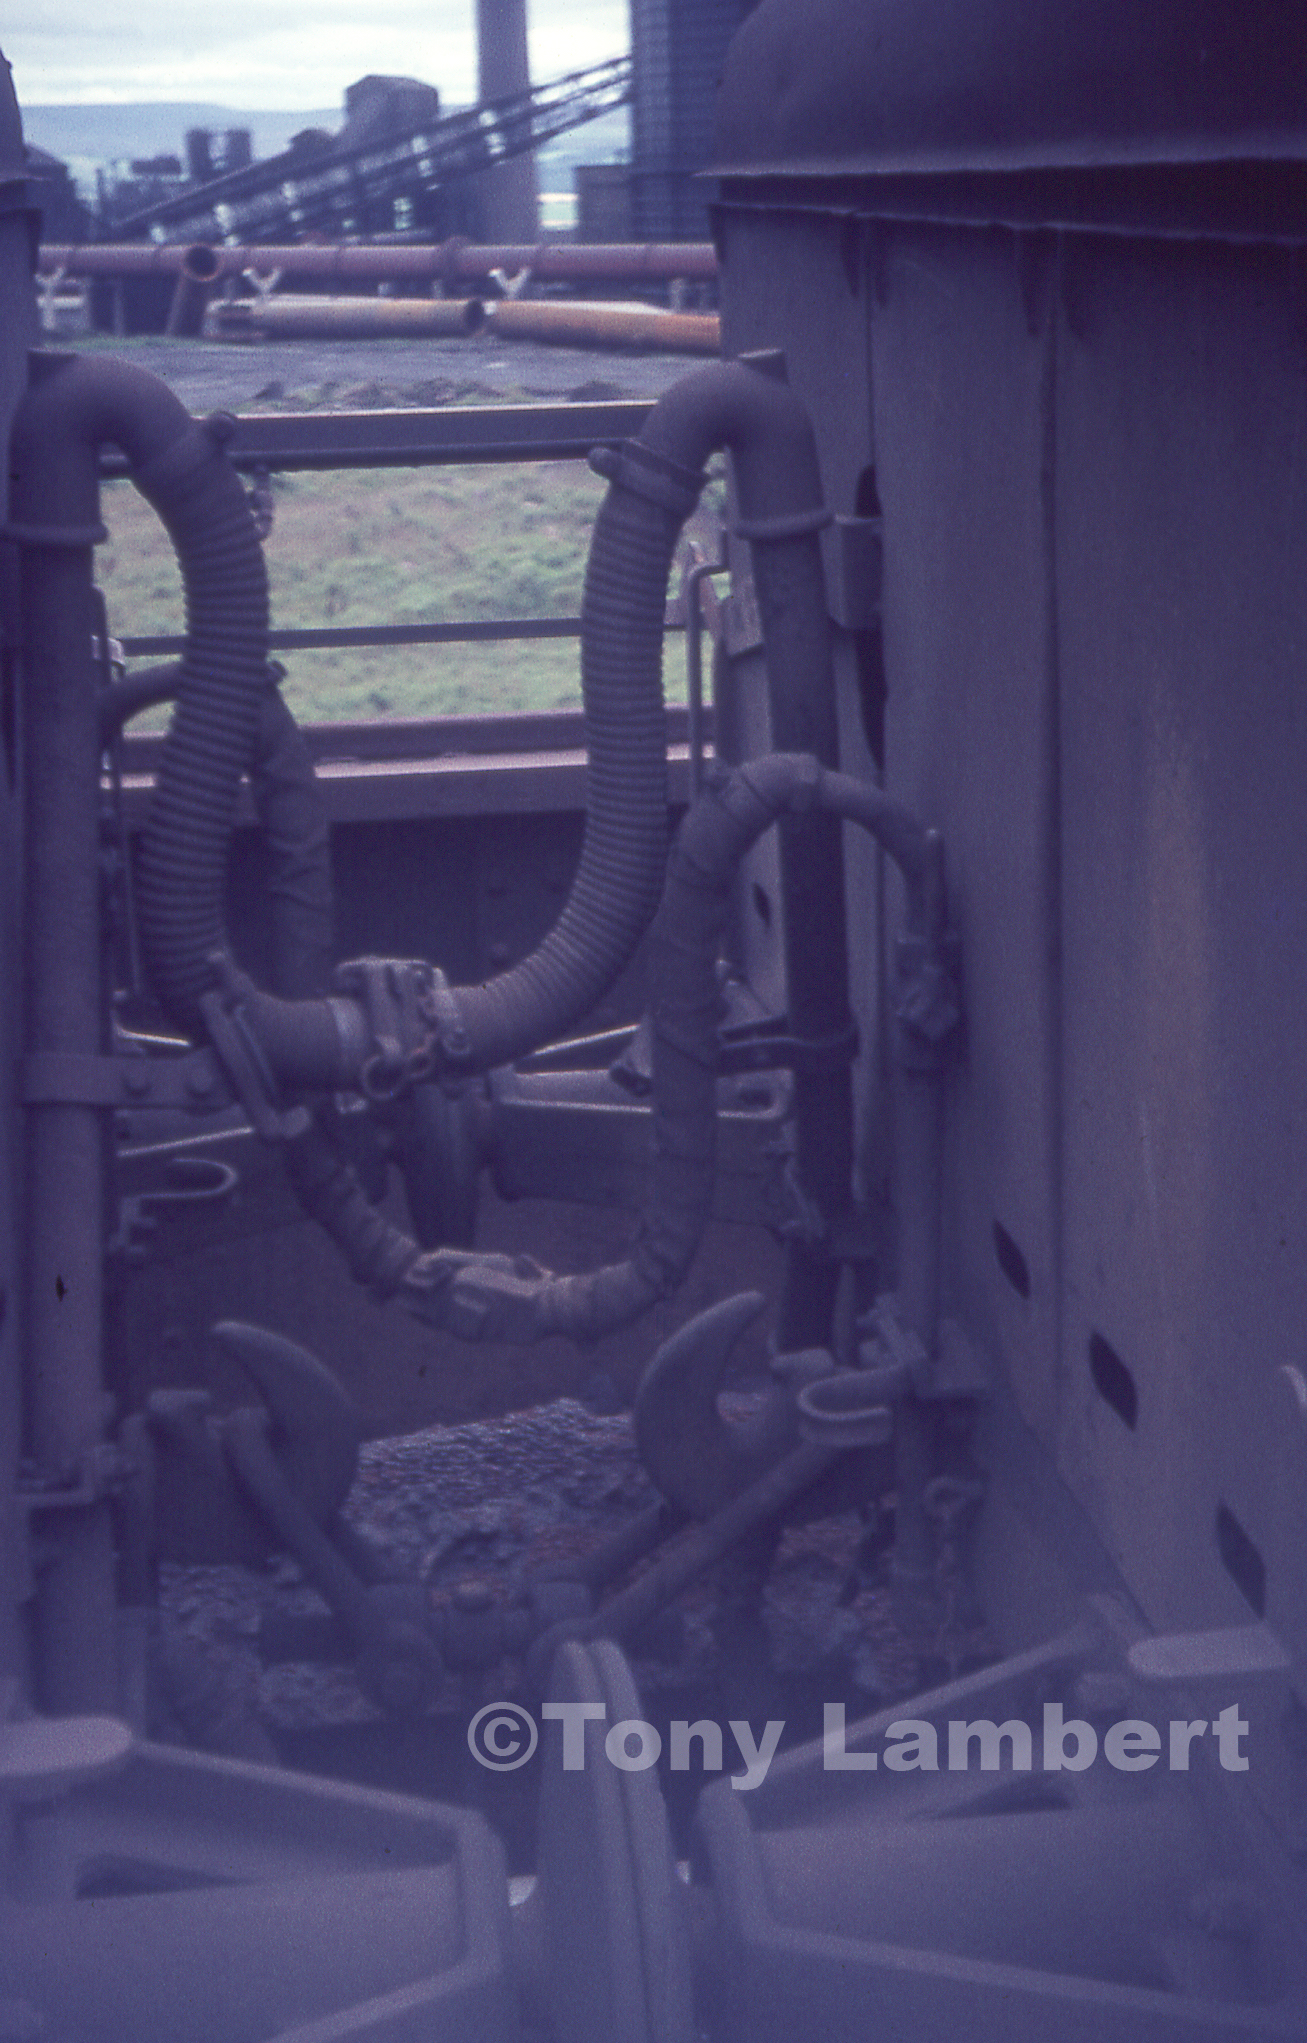 Detail of air and vacuum pipes on iron ore wagons. Photo copyright Tony Lambert